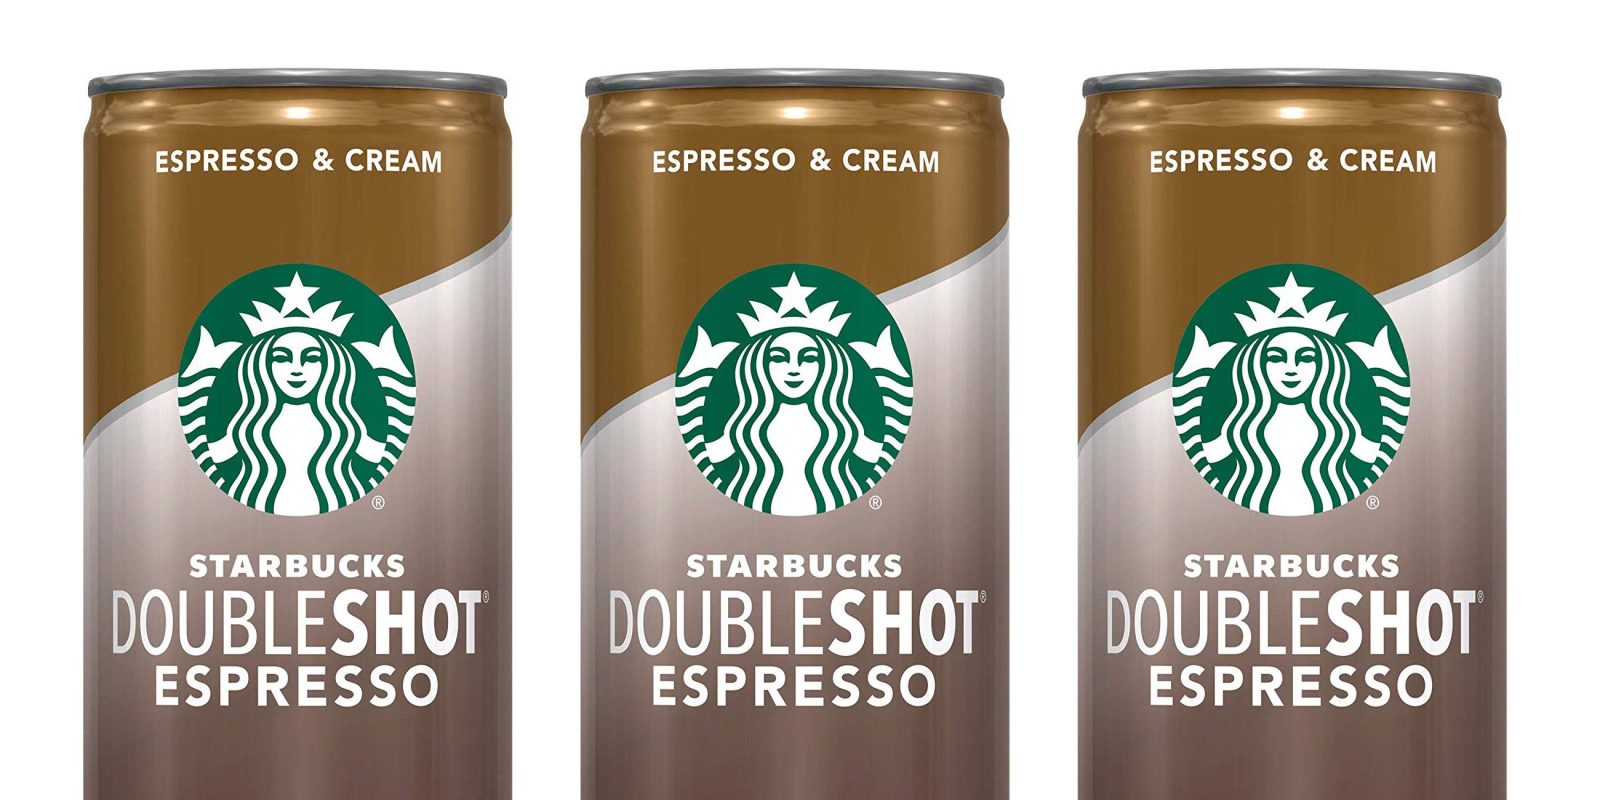 Starbucks Doubleshot Espresso Drinks 12 Pack For 12 25